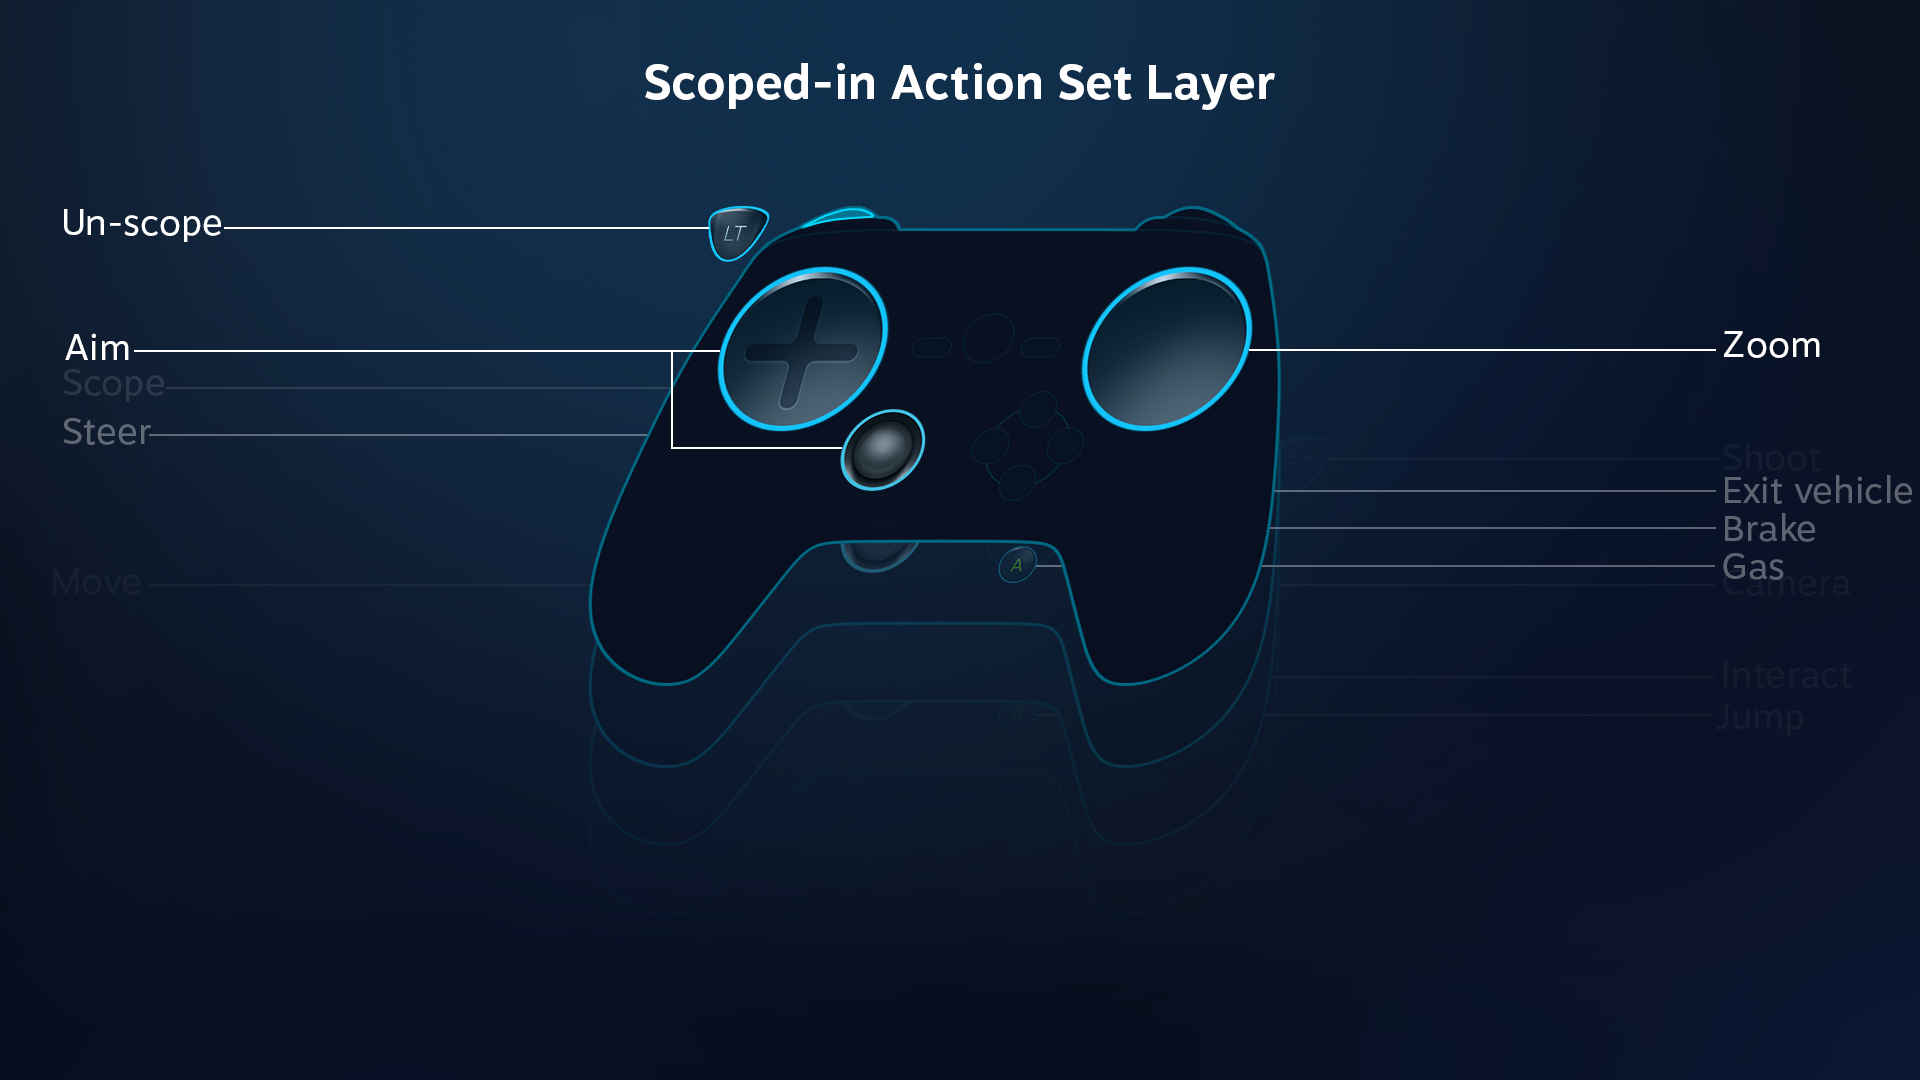 action_set_layers_scope.png